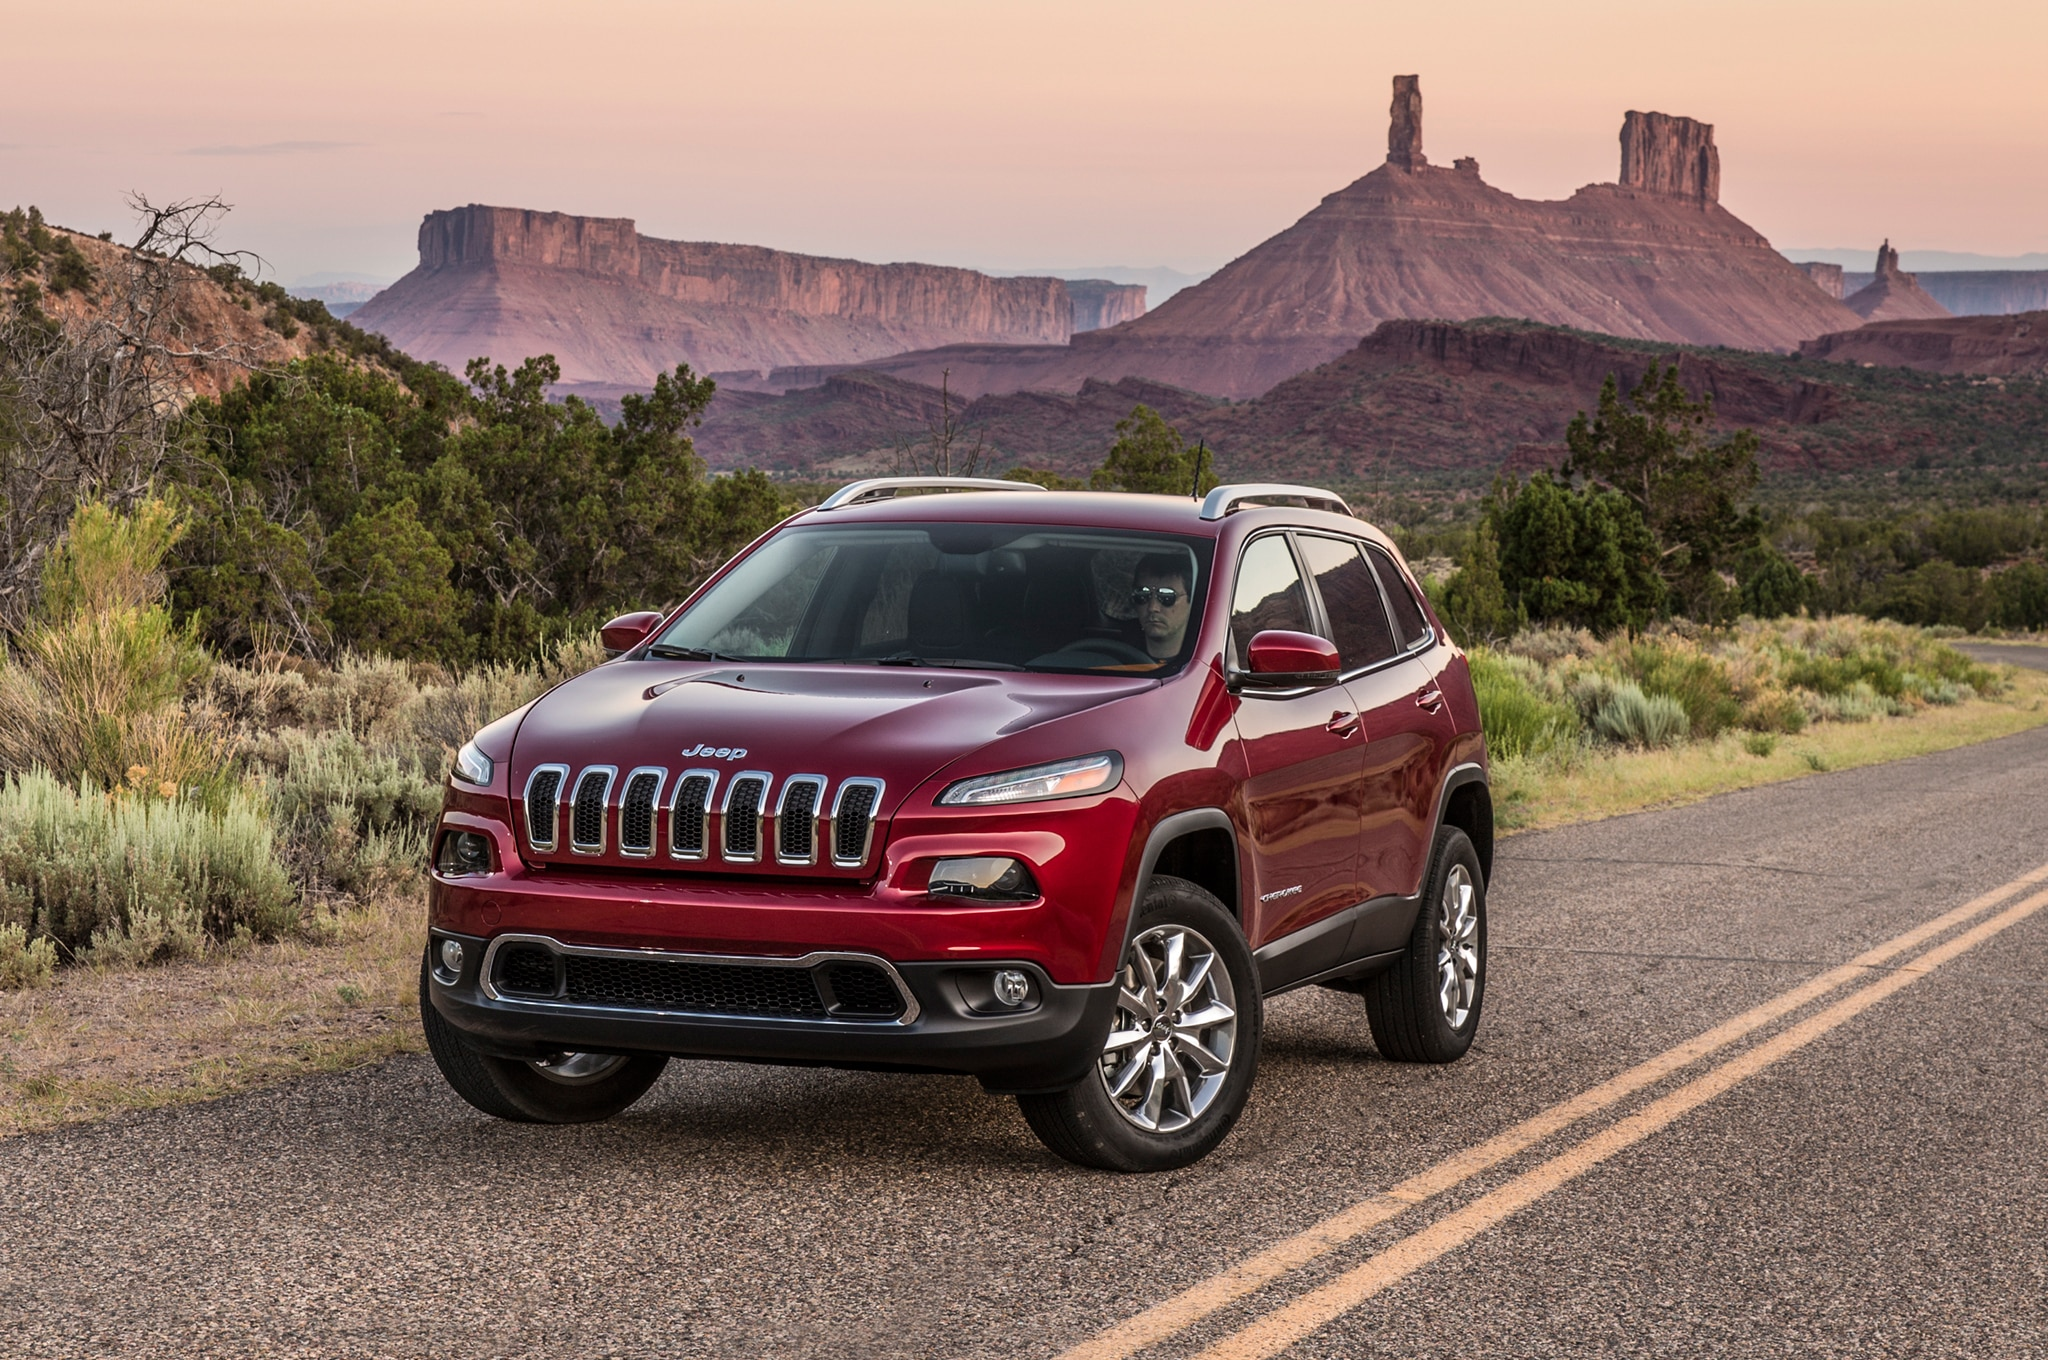 2014 Jeep Cherokee Limited Front Three Quarters View 03